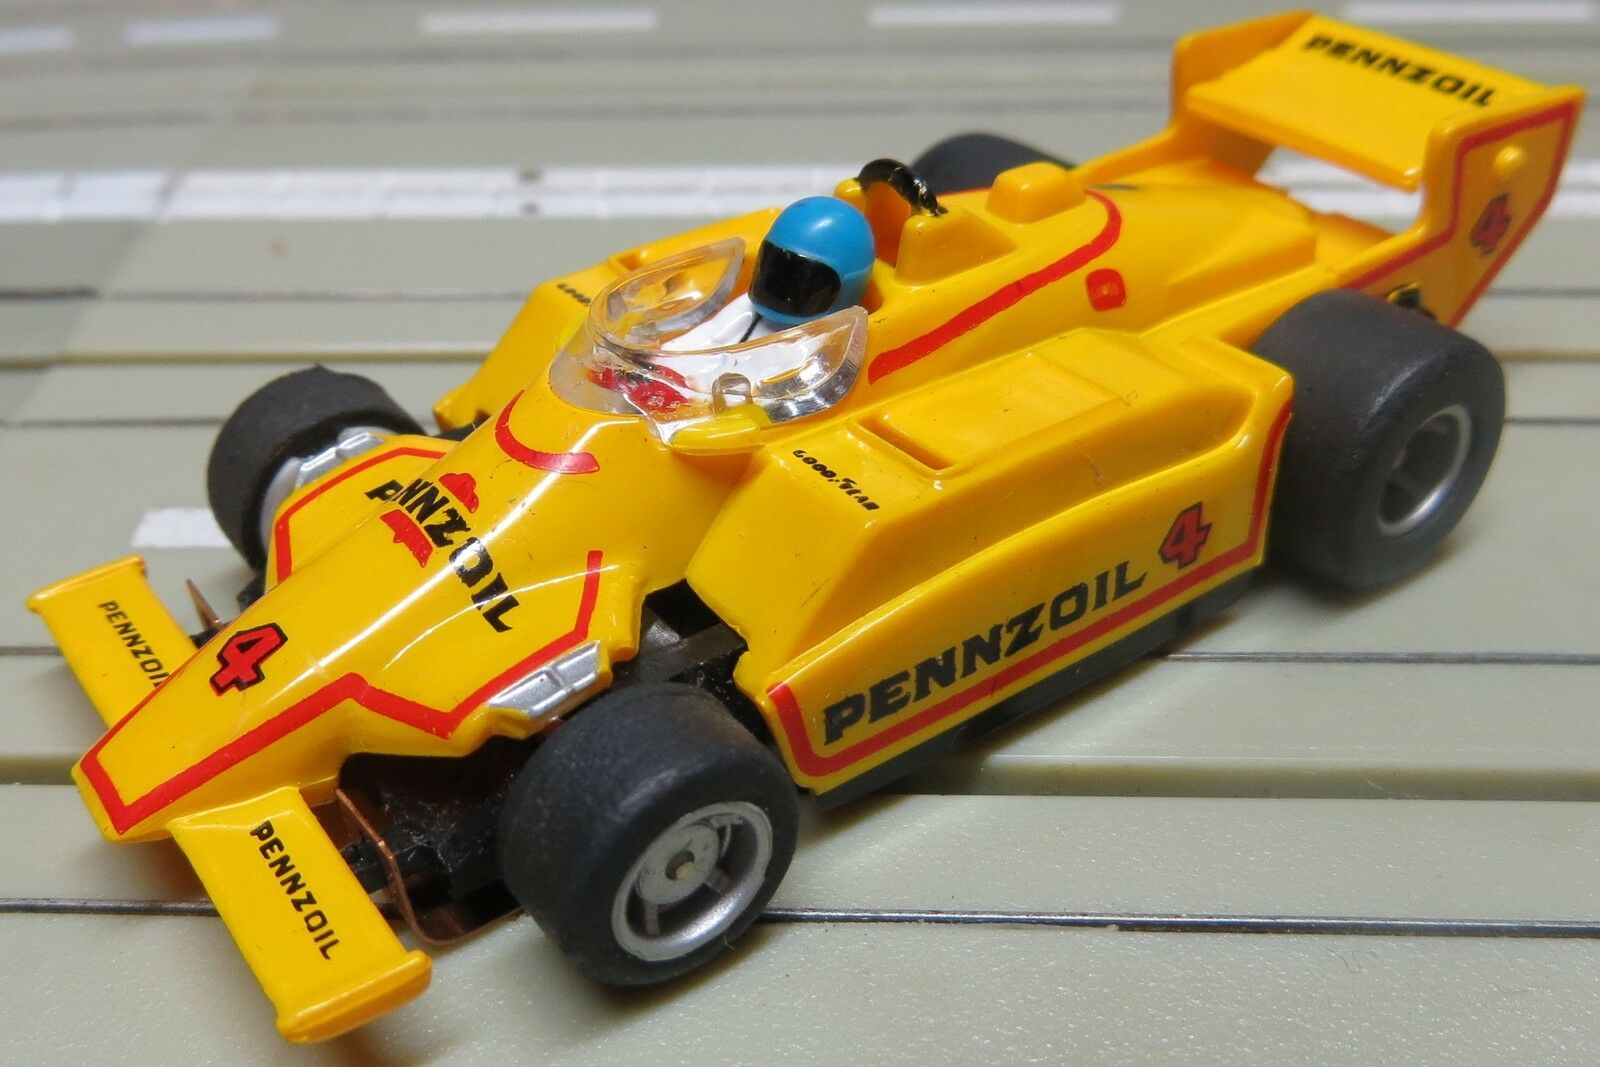 Für H0 Slotcar Modellbahn Modellbahn Modellbahn ---  Indy Pennzoil mit Tyco Motor 2f8170